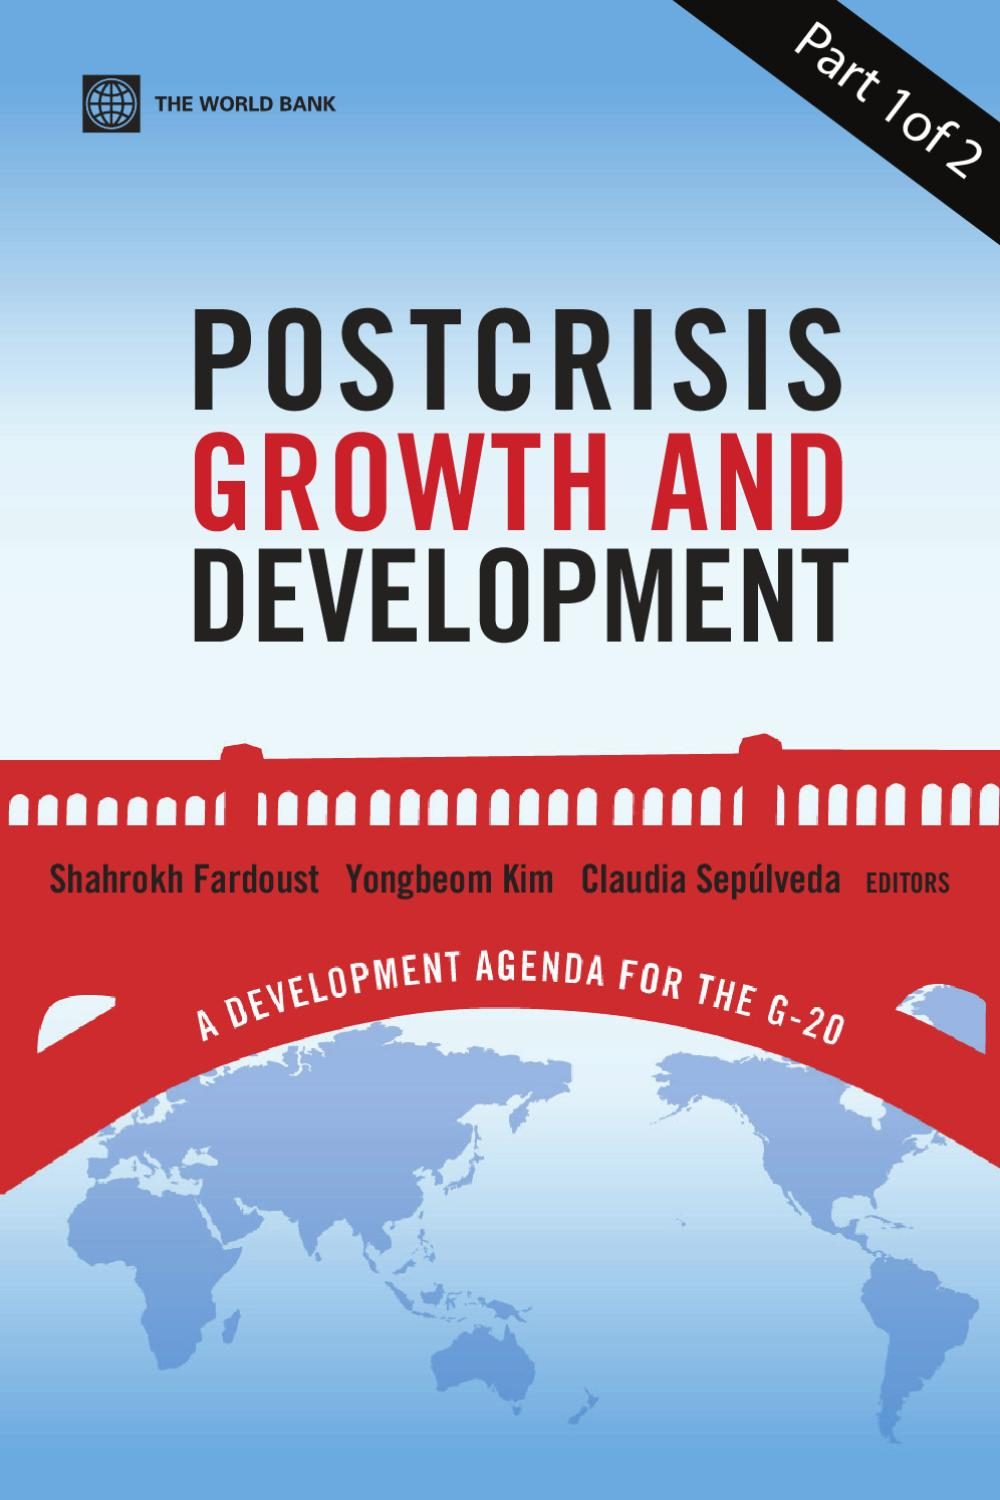 Postcrisis growth and development a development agenda for the g 20 postcrisis growth and development a development agenda for the g 20 part 1 of 2 by world bank publications issuu fandeluxe Images